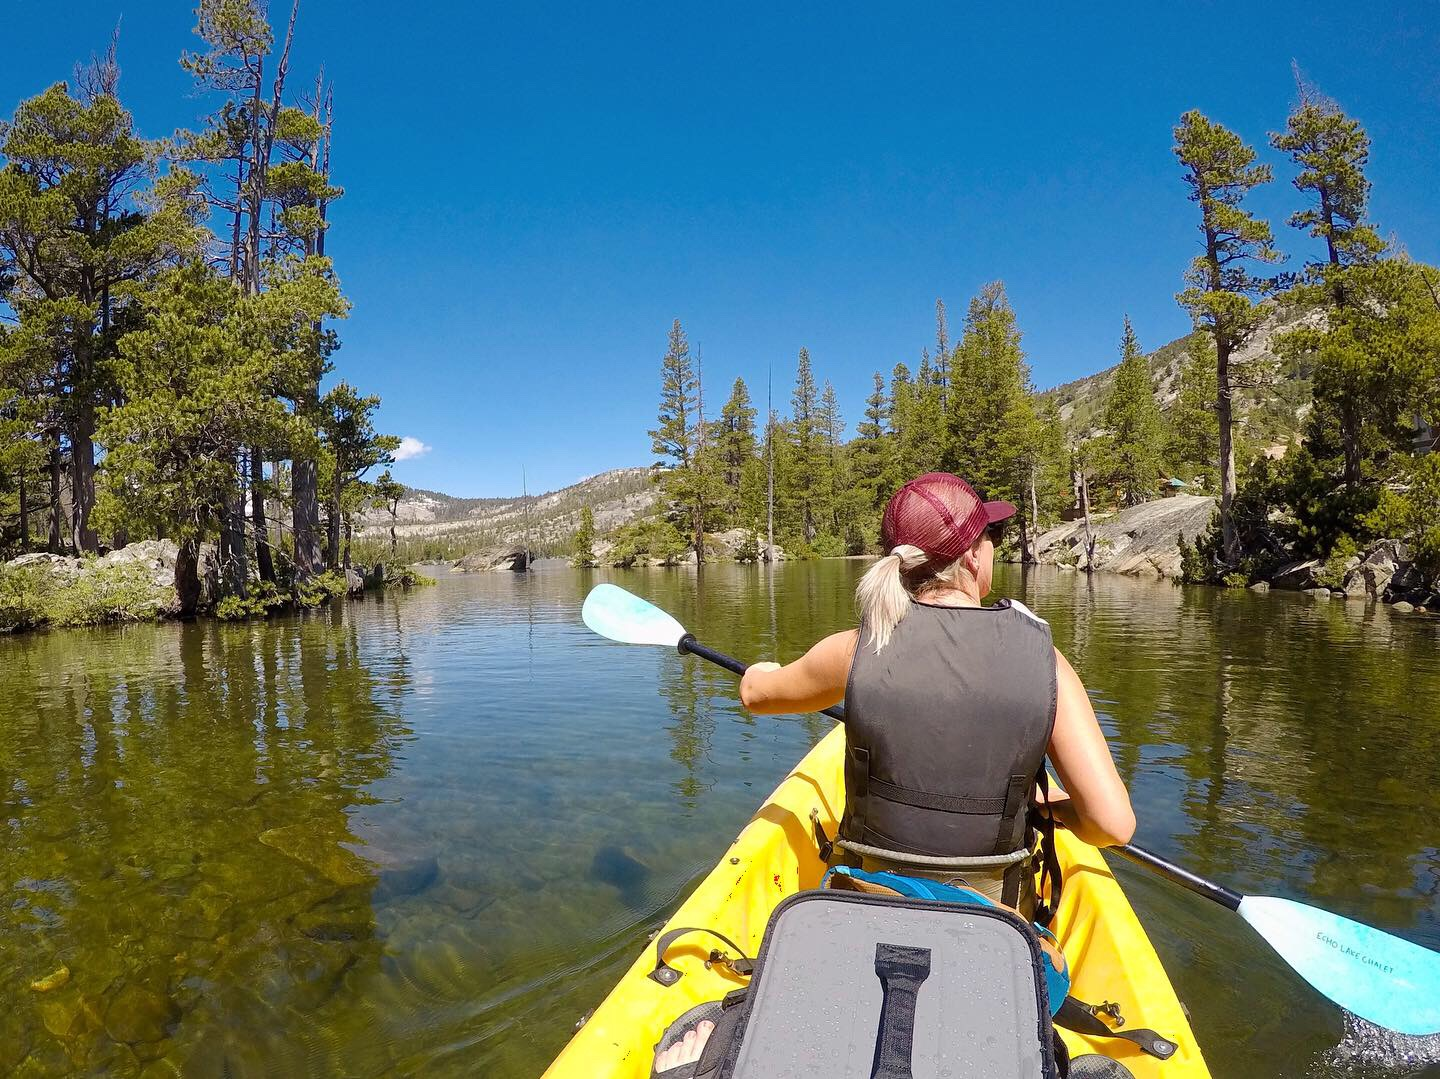 Kayaking through the Upper Echo Lake Channel in Desolation Wilderness in California.